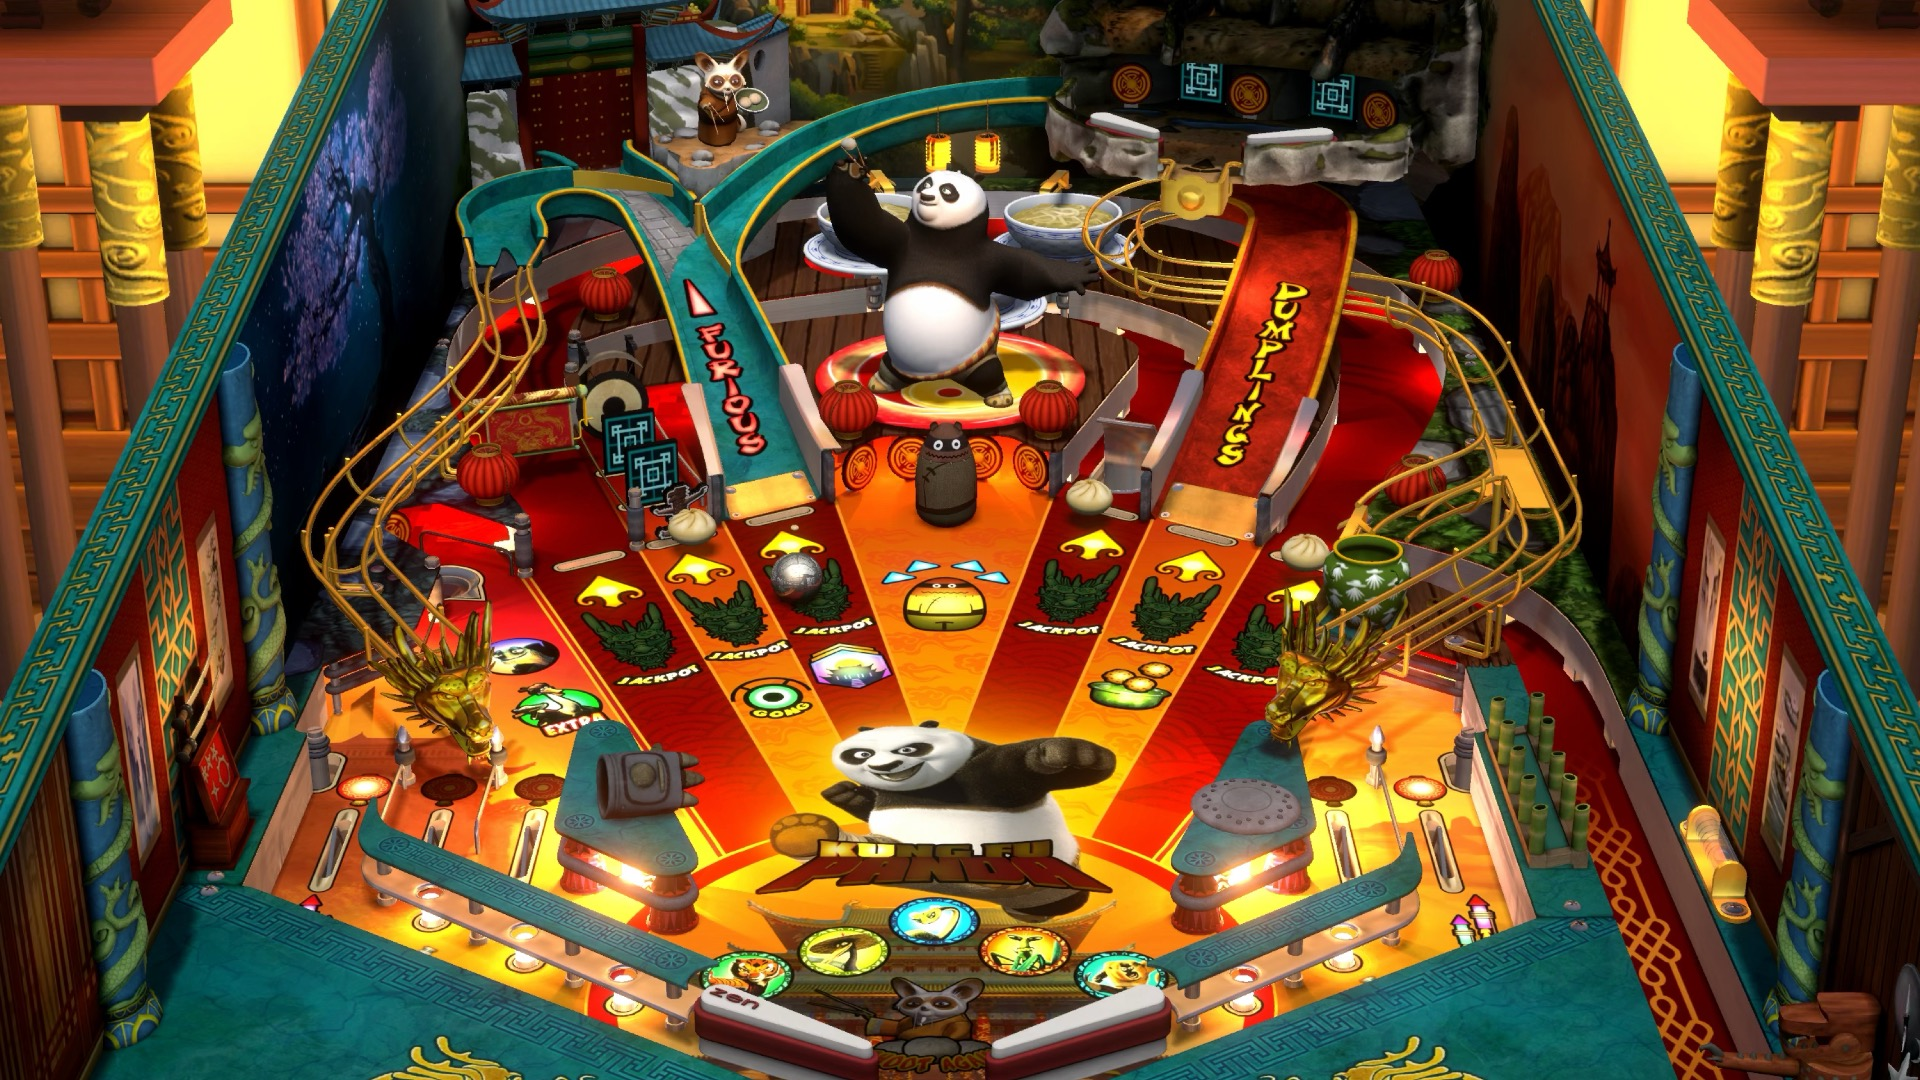 Zen Pinball Party, Layton's Mystery Journey , and MasterChef: Let's Cook Are Out Now as This Week's New Apple Arcade Games